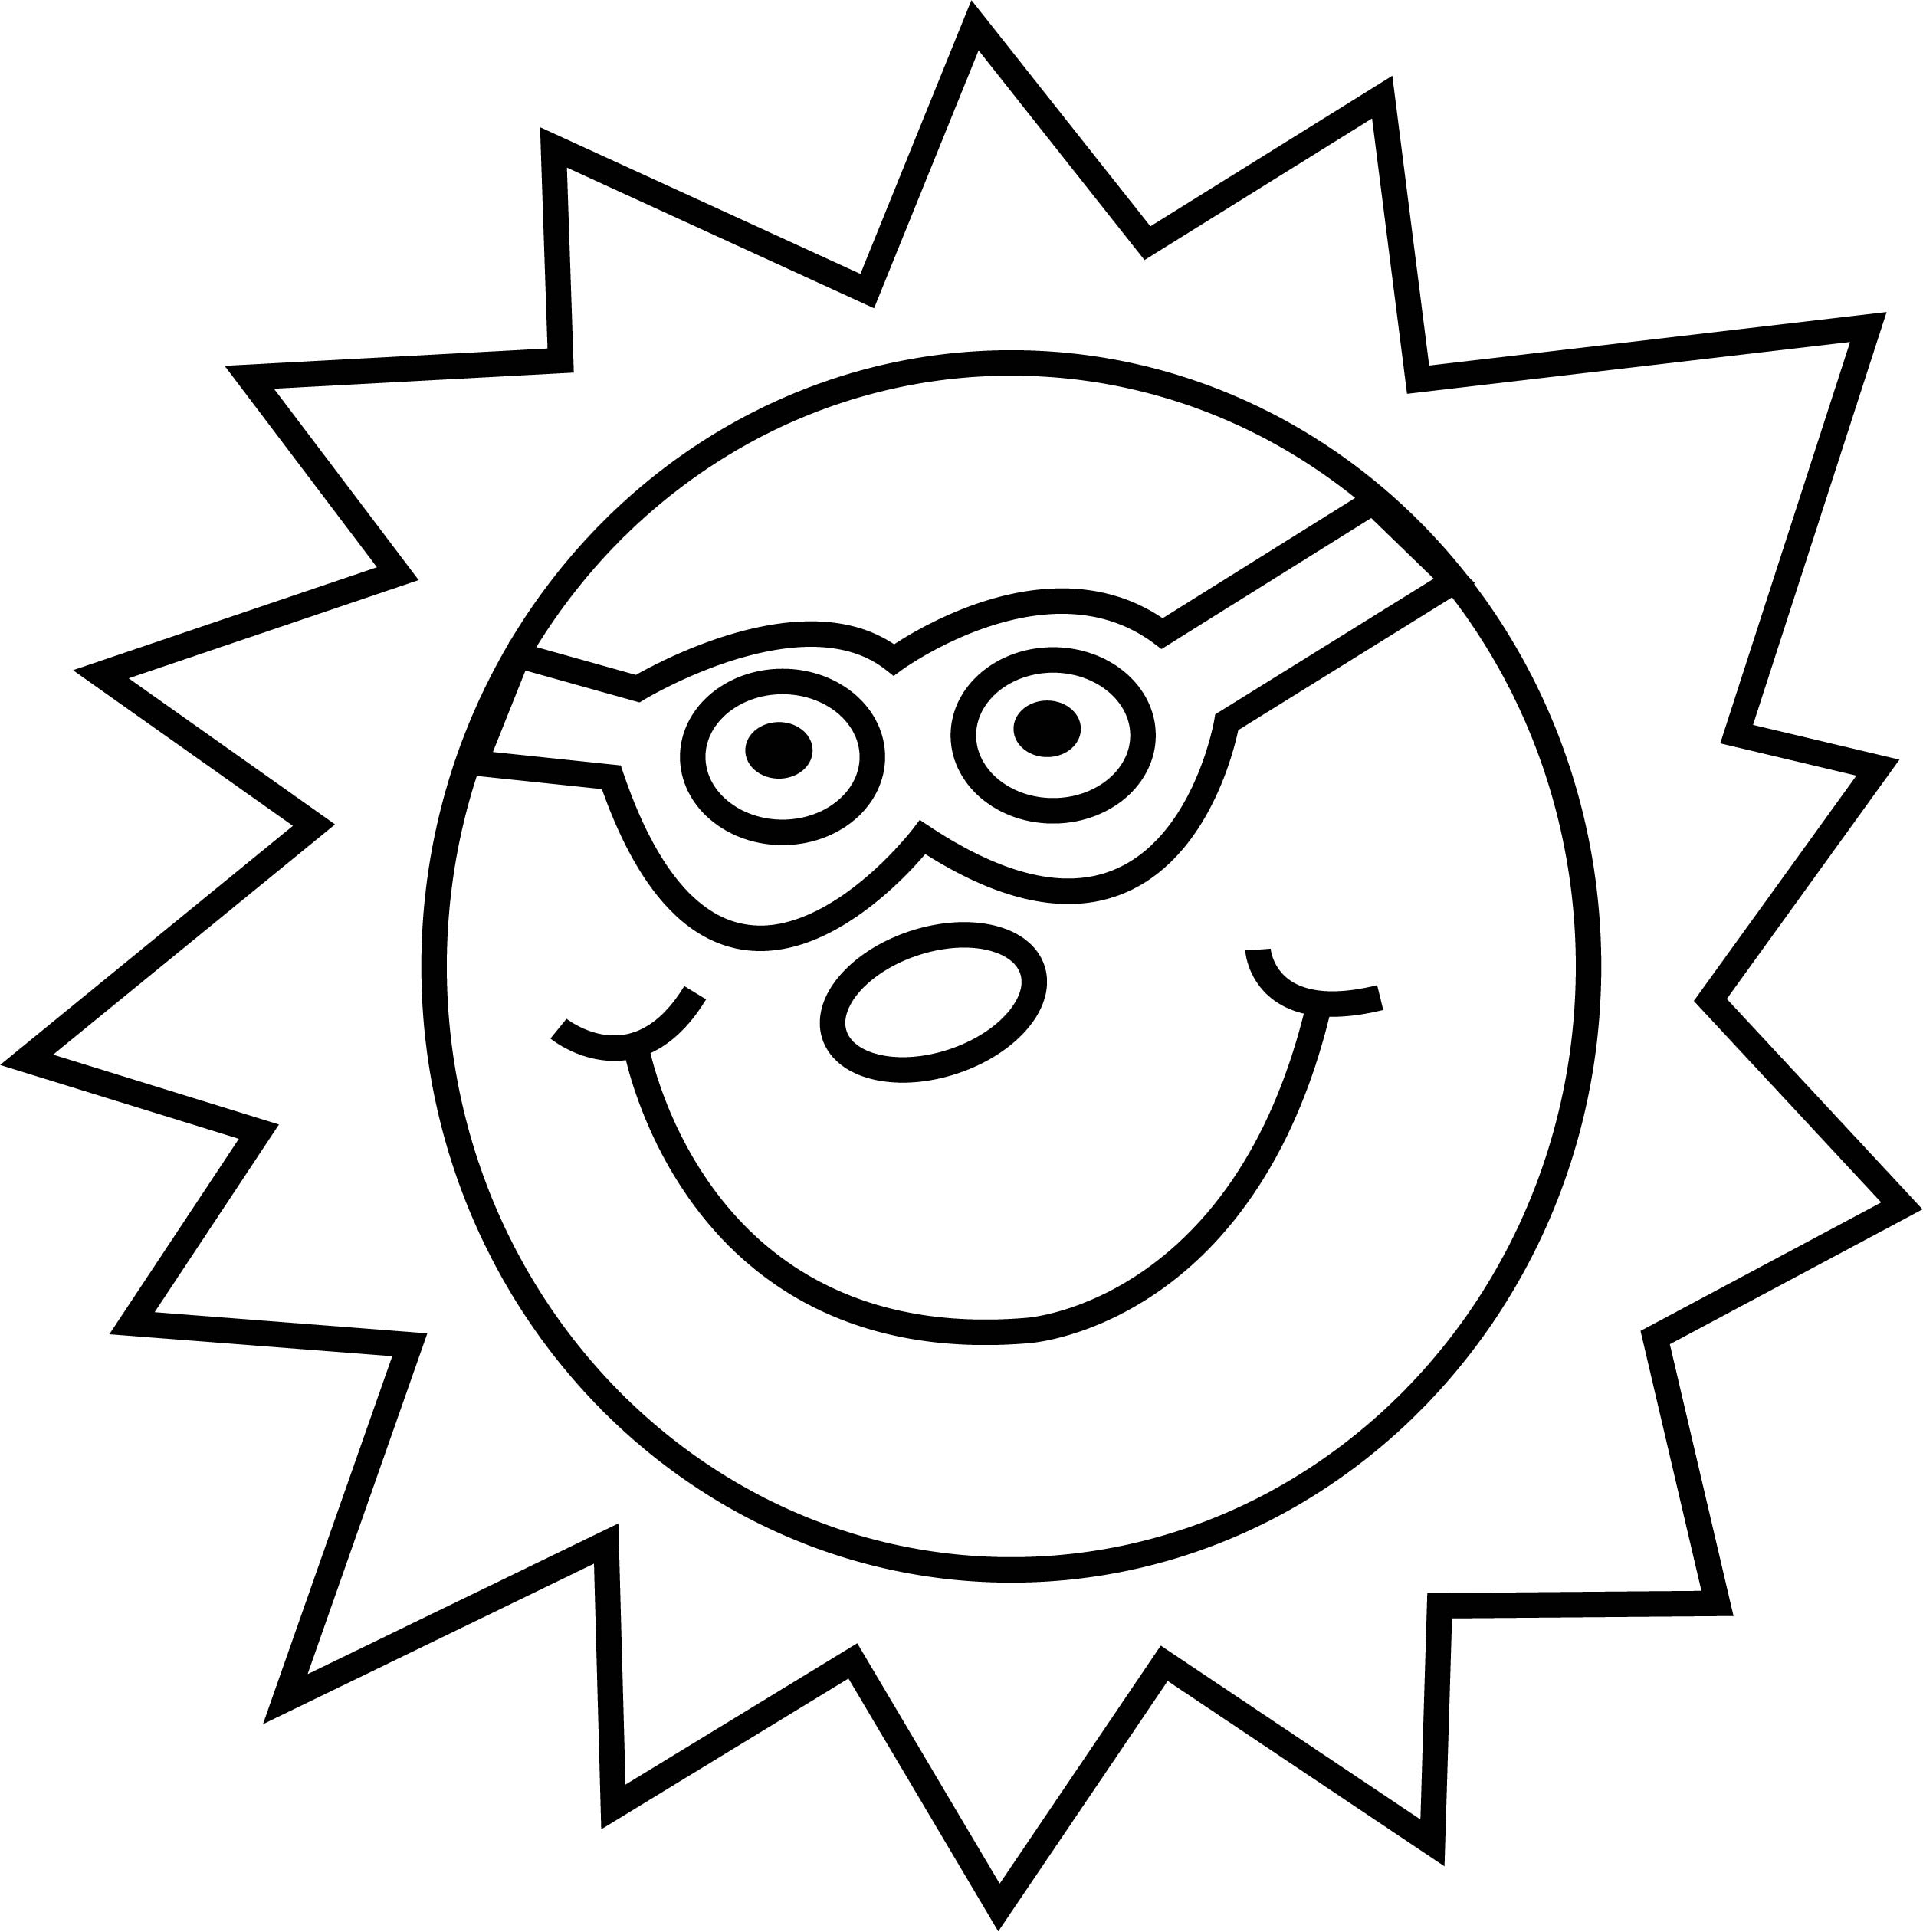 Sun Summer Coloring Page | Wecoloringpage.com